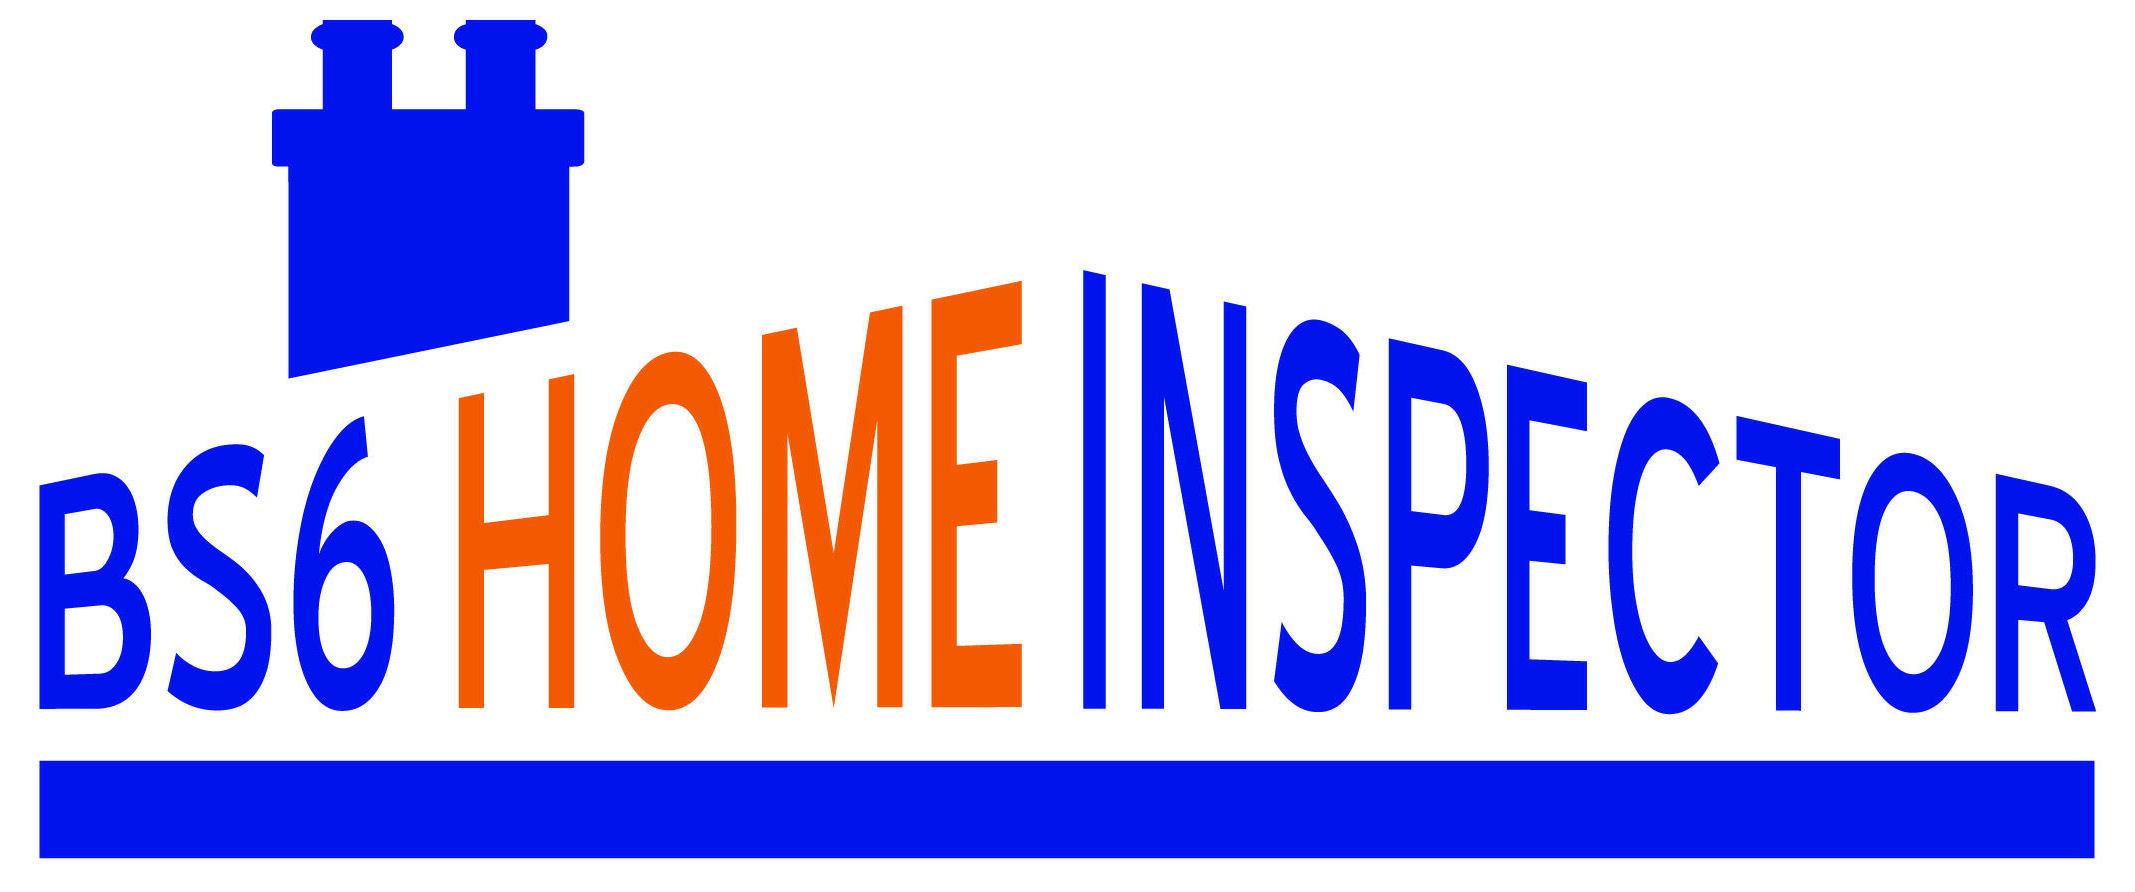 BS6homeinspector